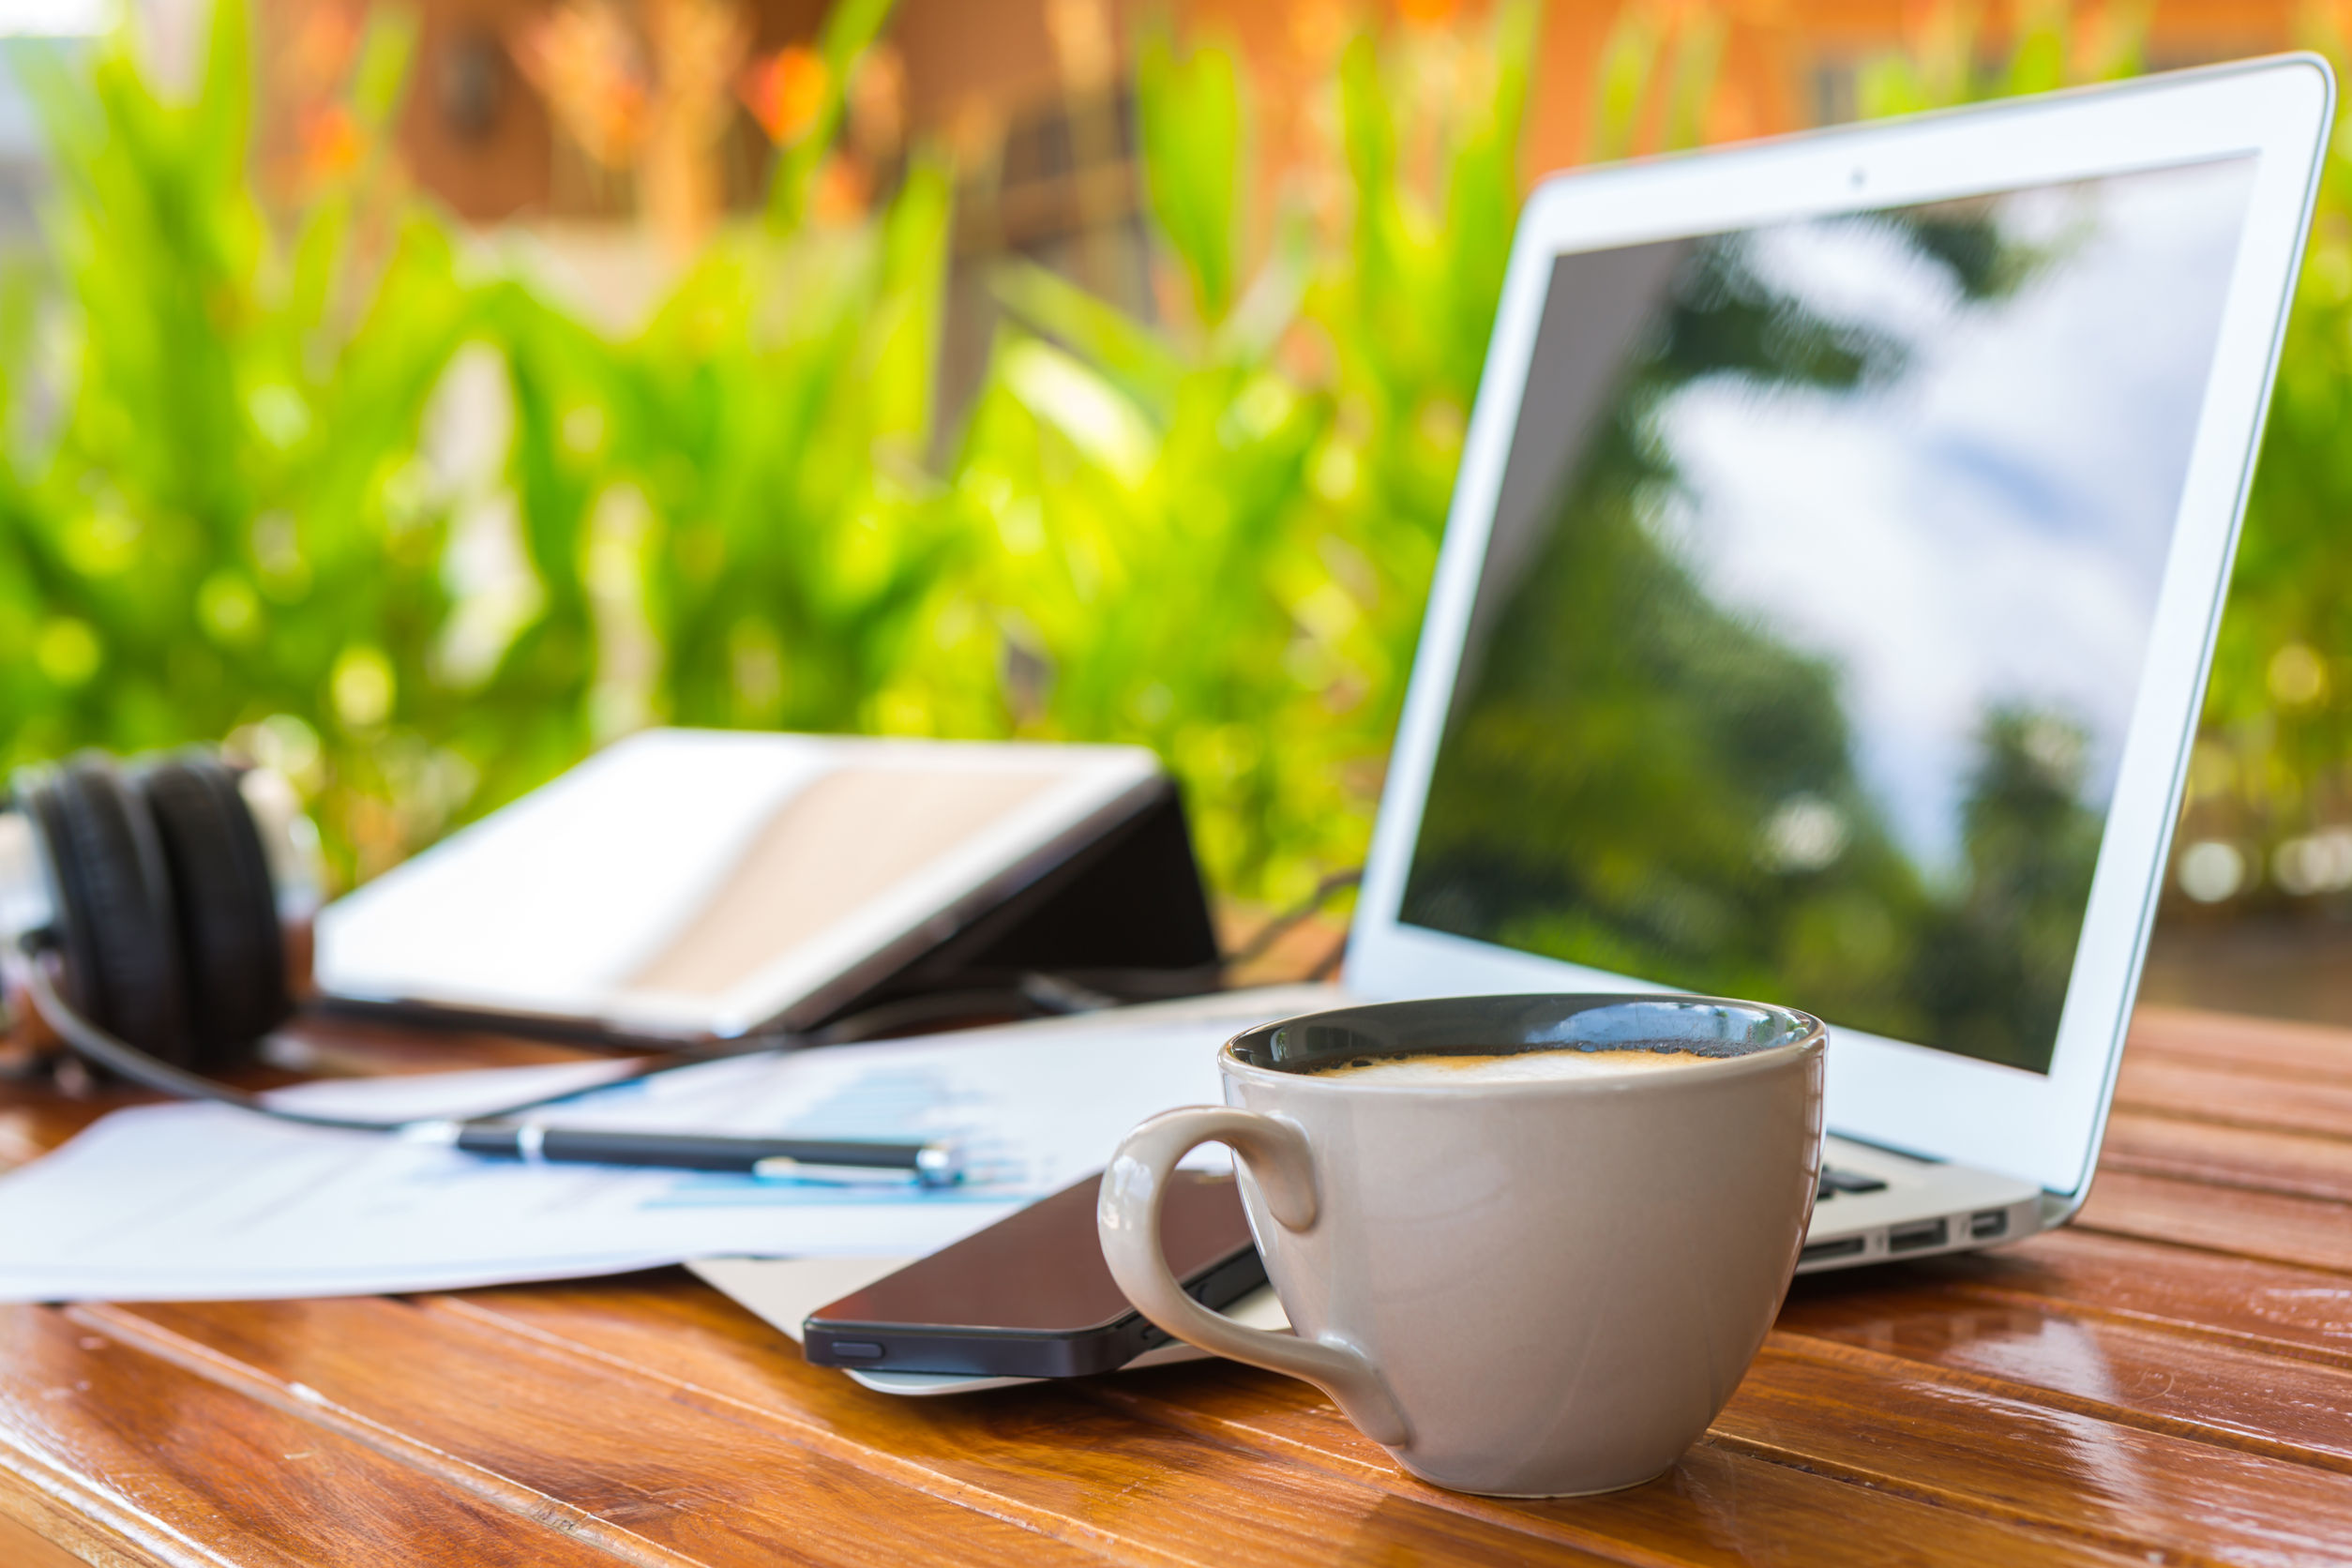 An open laptop and cup of coffee on a desk